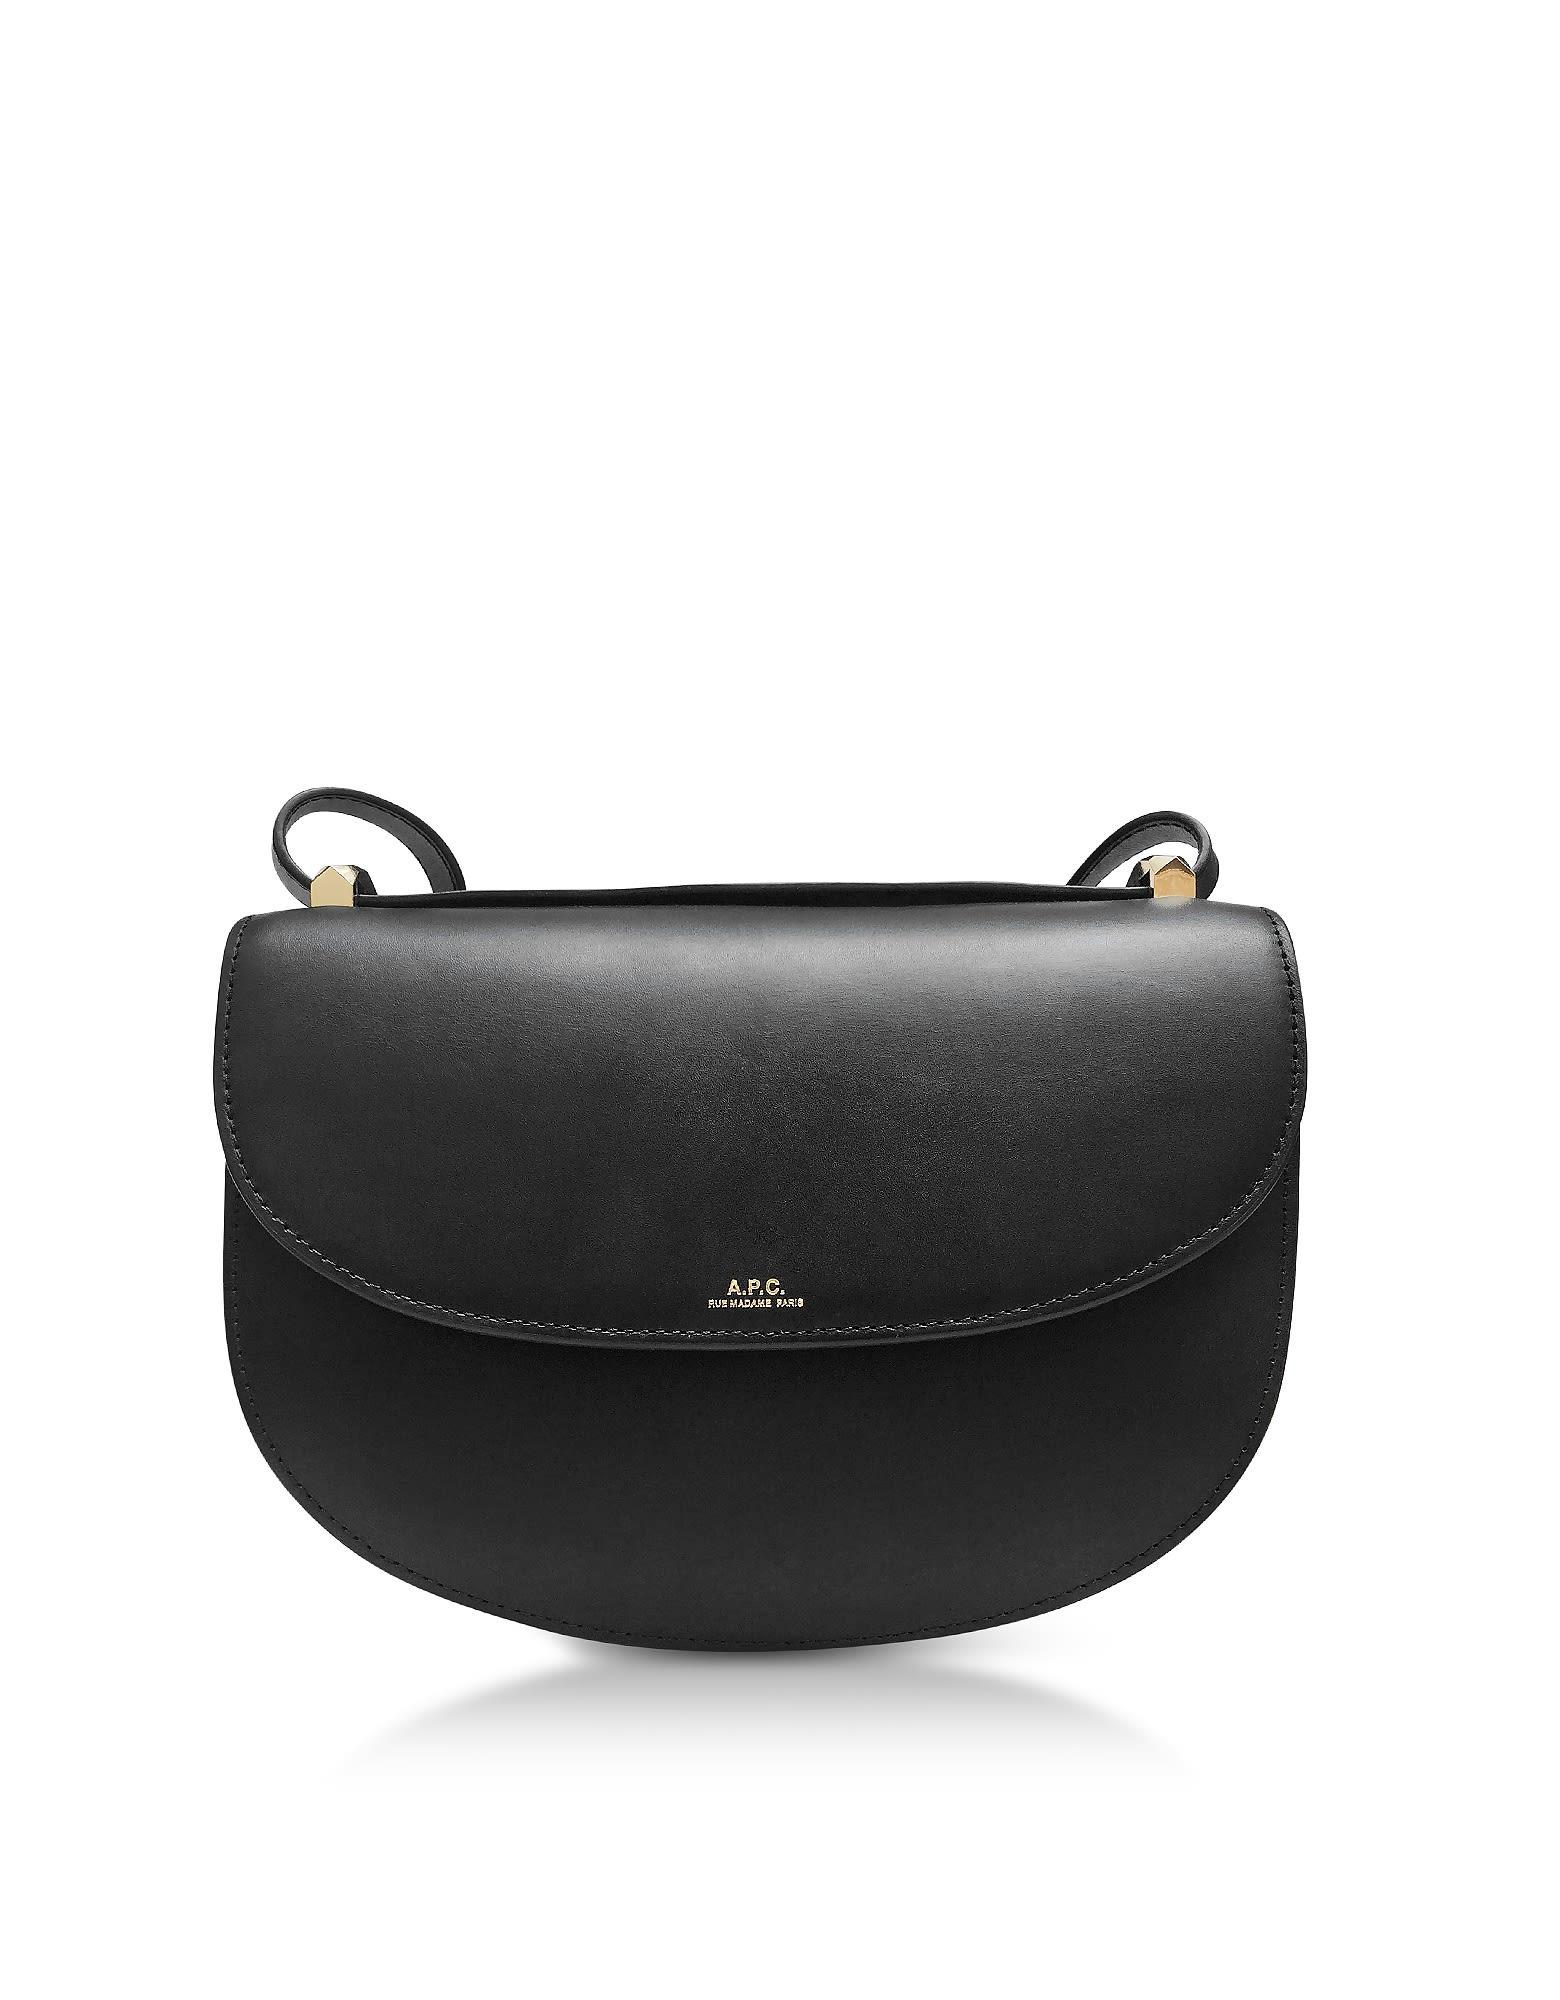 Genève Cross-Body Leather Bag in Black